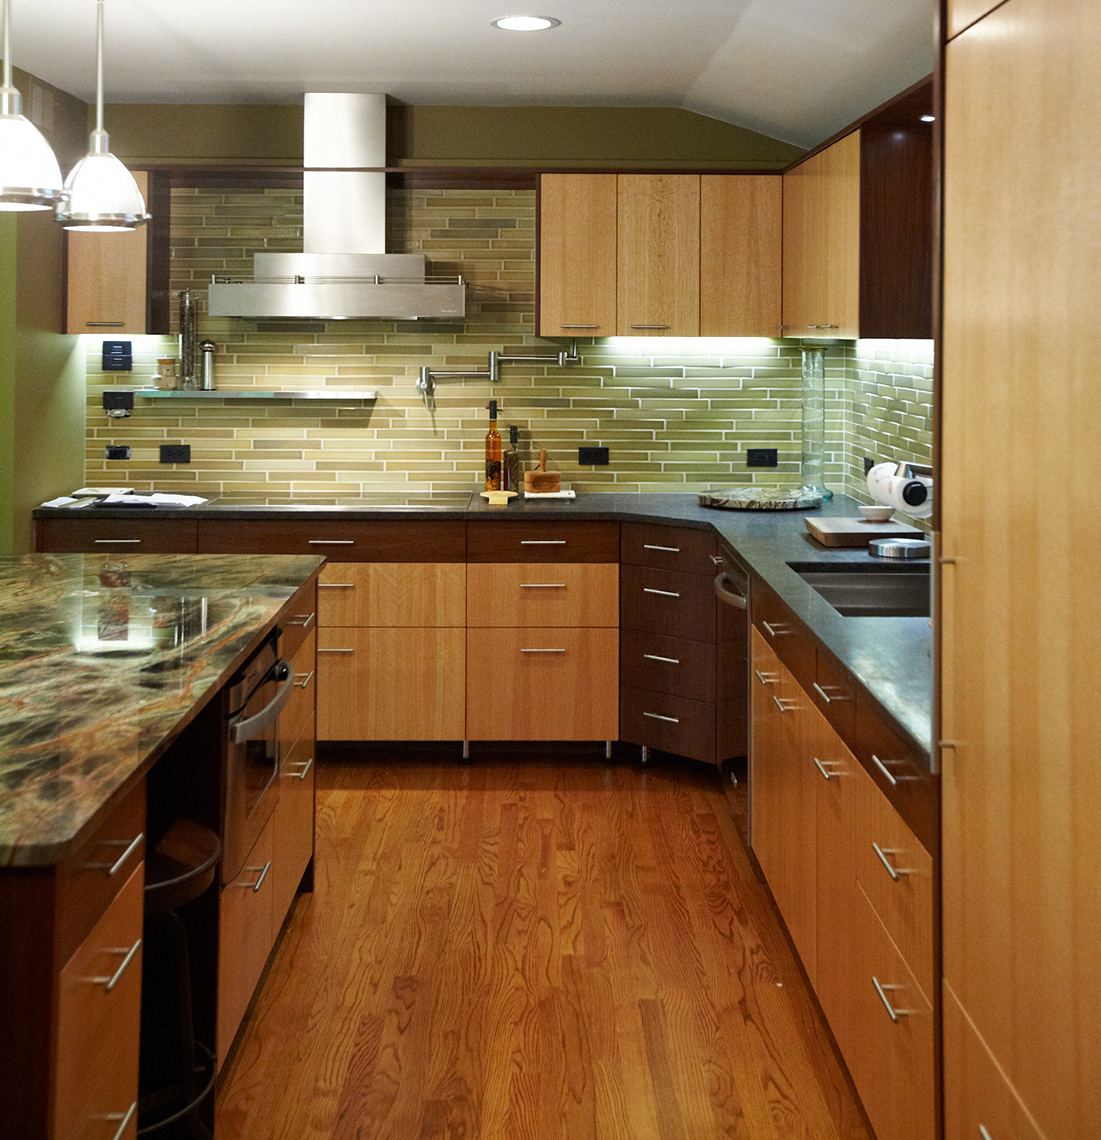 custom kitchen cabinets- mercer county, nj-by birdie miller-Contemporary-Rift-Grain-Oak-and-Walnut-Custom-Cabinets-2